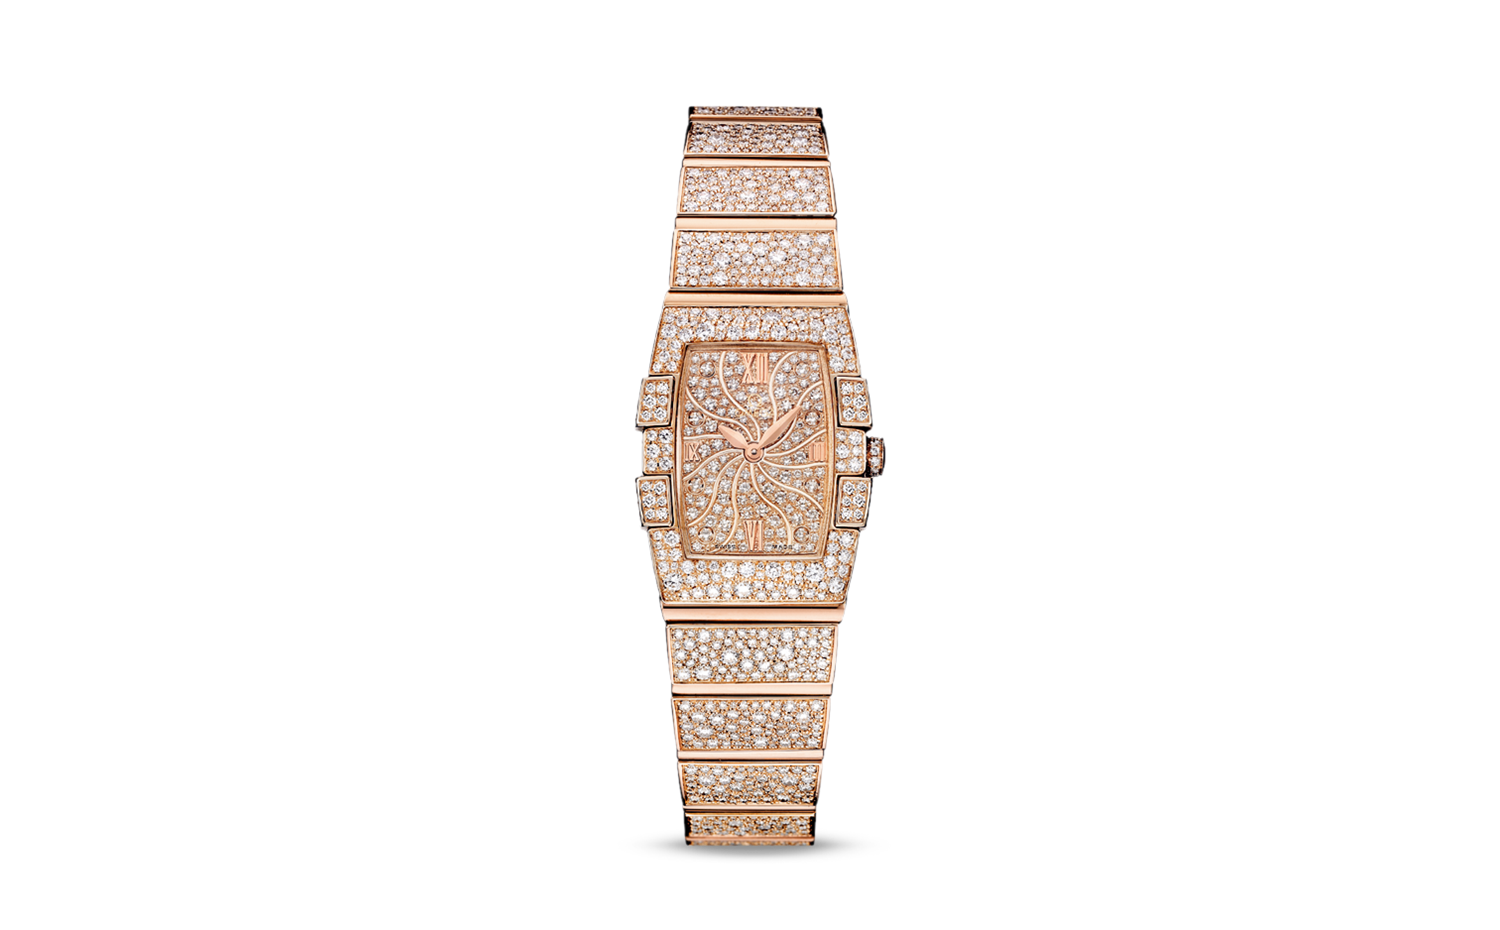 OMEGA Constellation Quadrella Quartz red gold strap 星座系列 - 桶形石英表款 玫瑰金